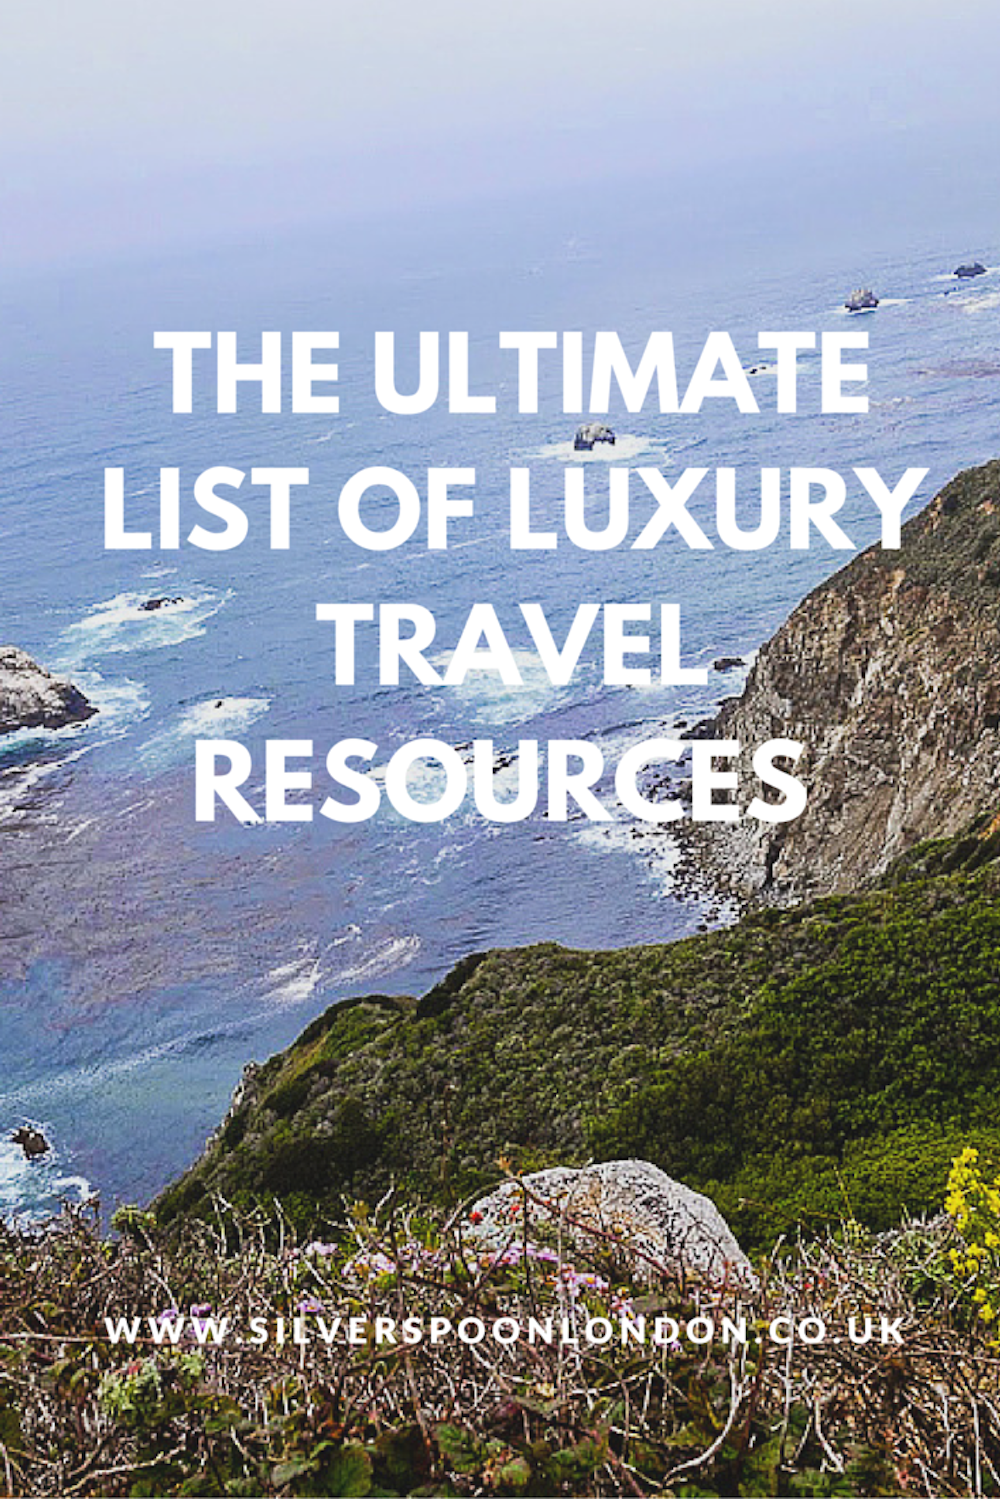 The Ultimate List of Luxury Travel Resources